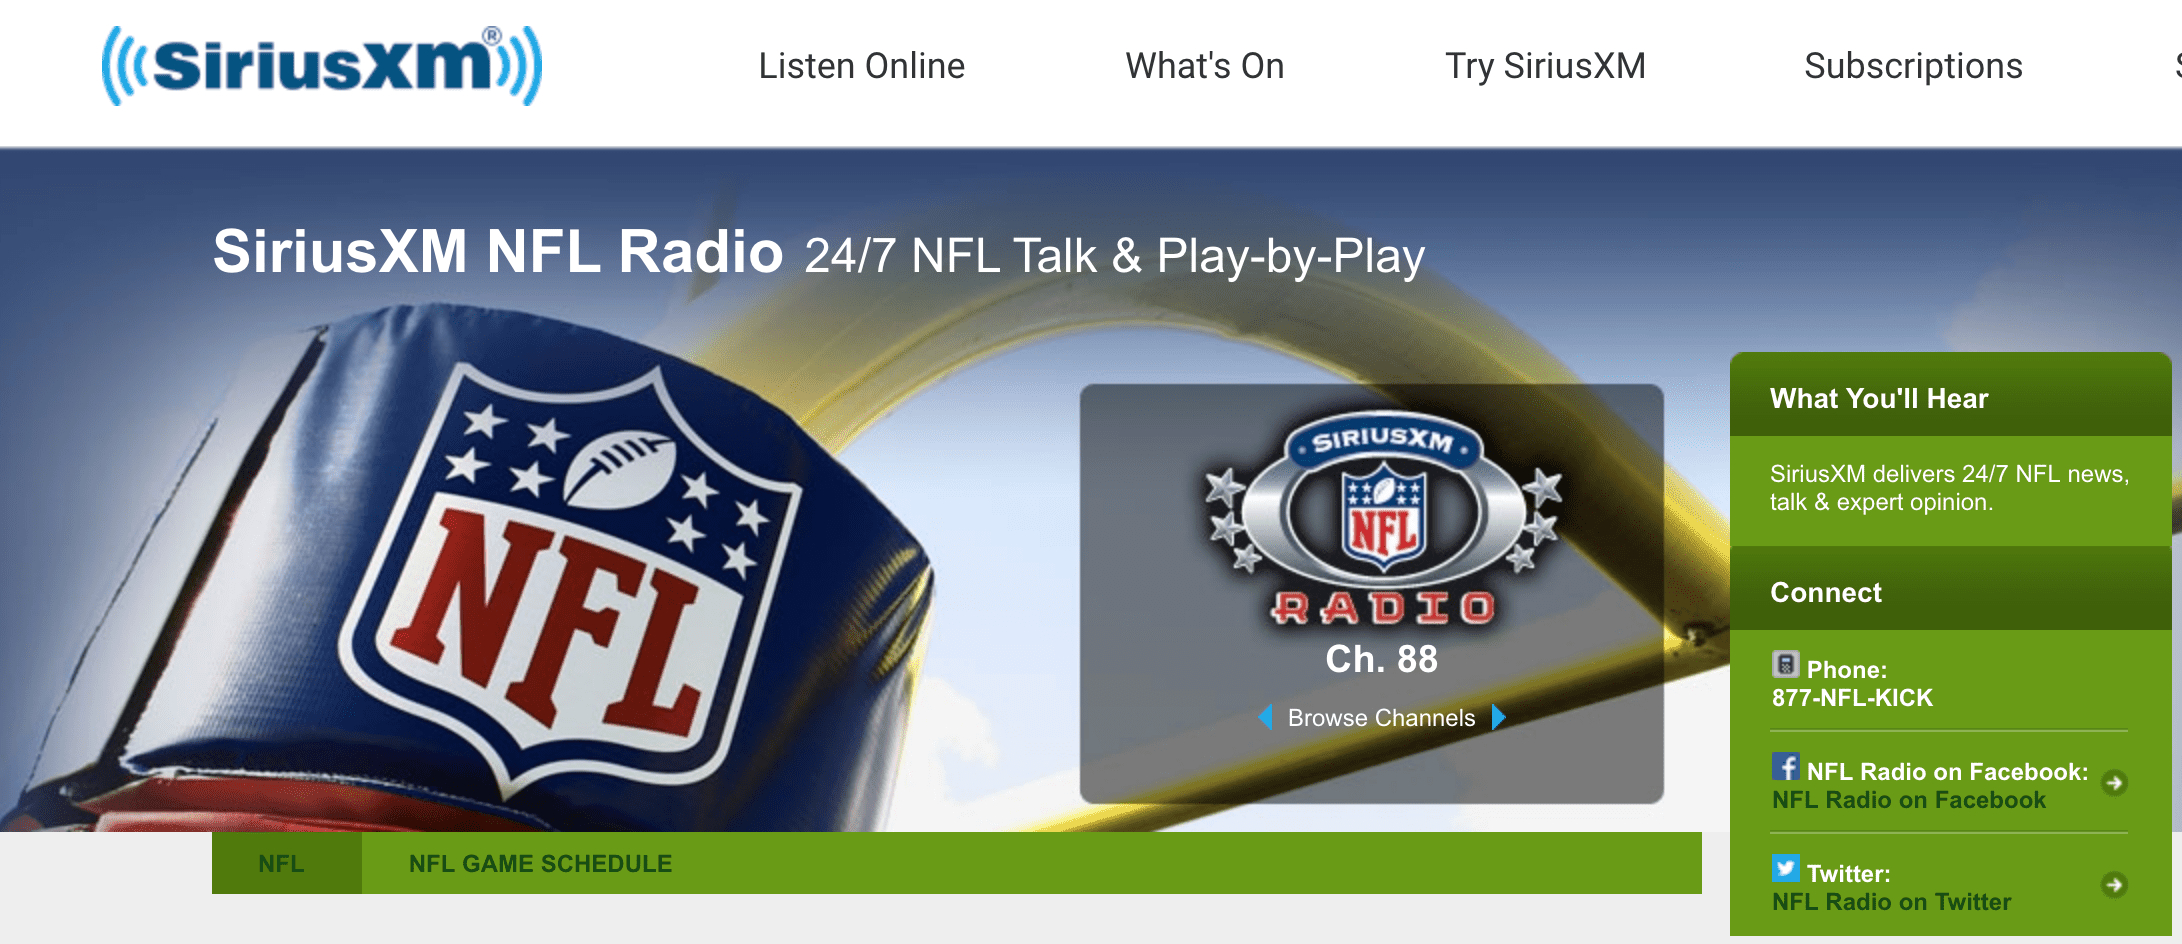 Nfl Schedule Channel Guide Siriusxm >> Ways To Listen To And Watch The Super Bowl On Radio